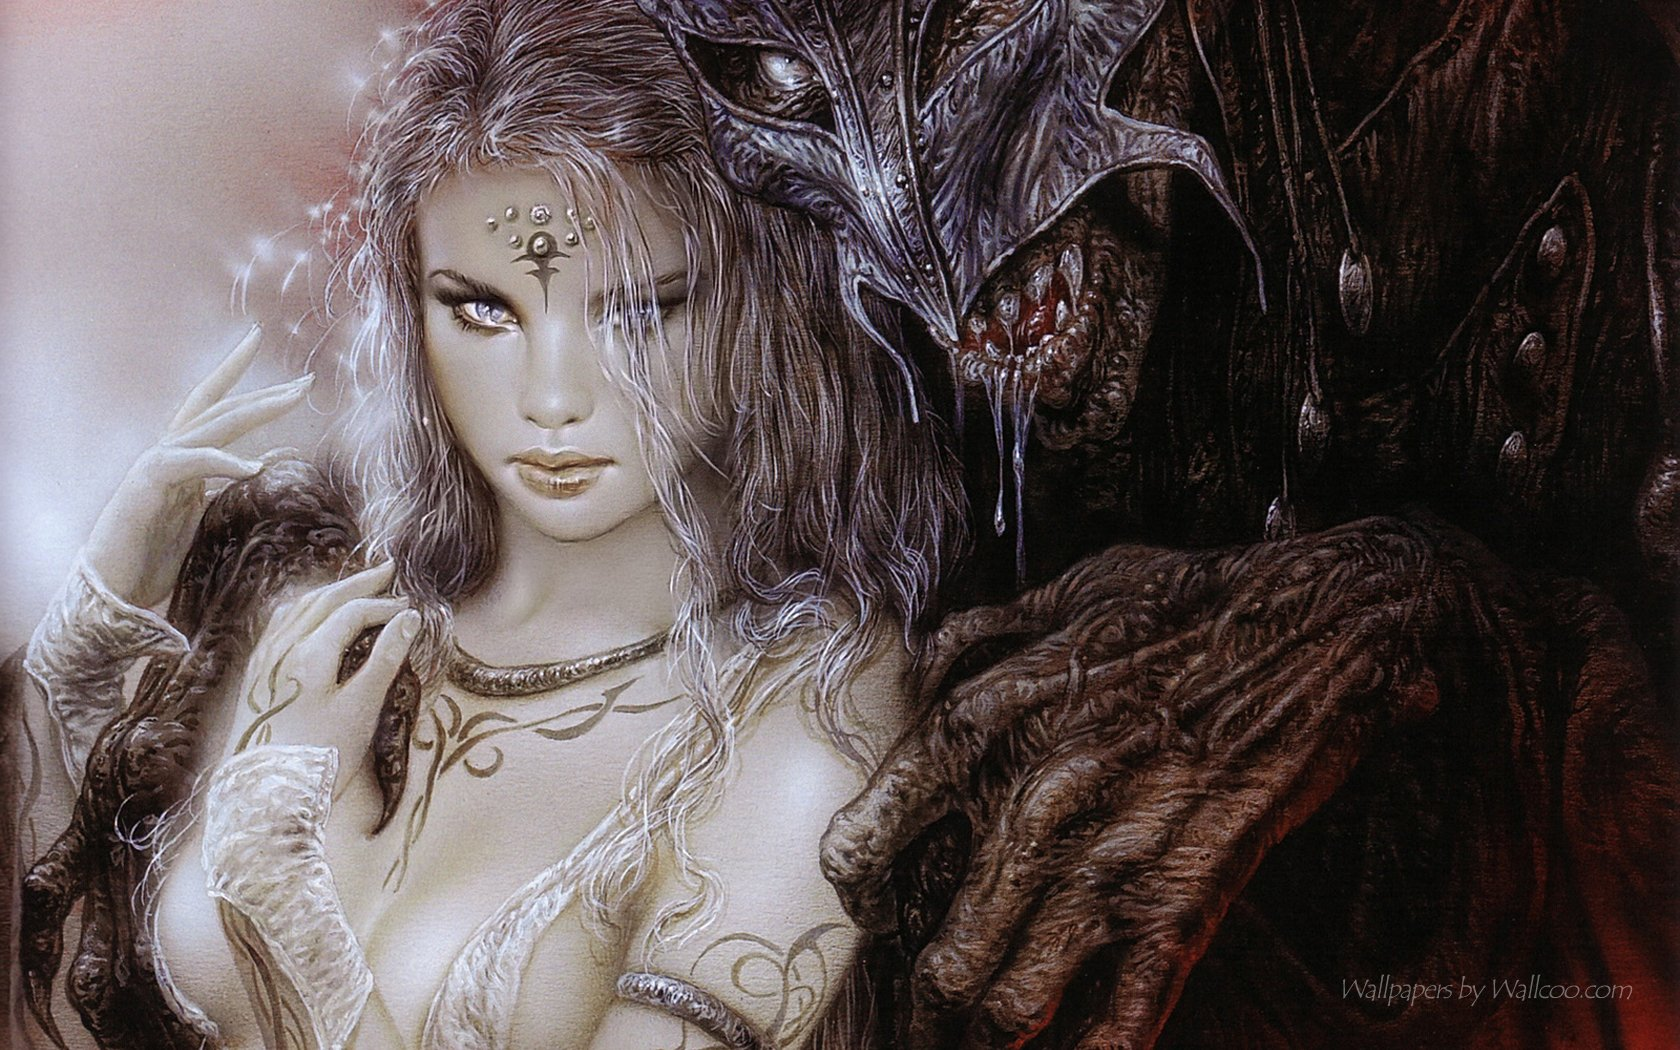 Luis royo heavy metal was and